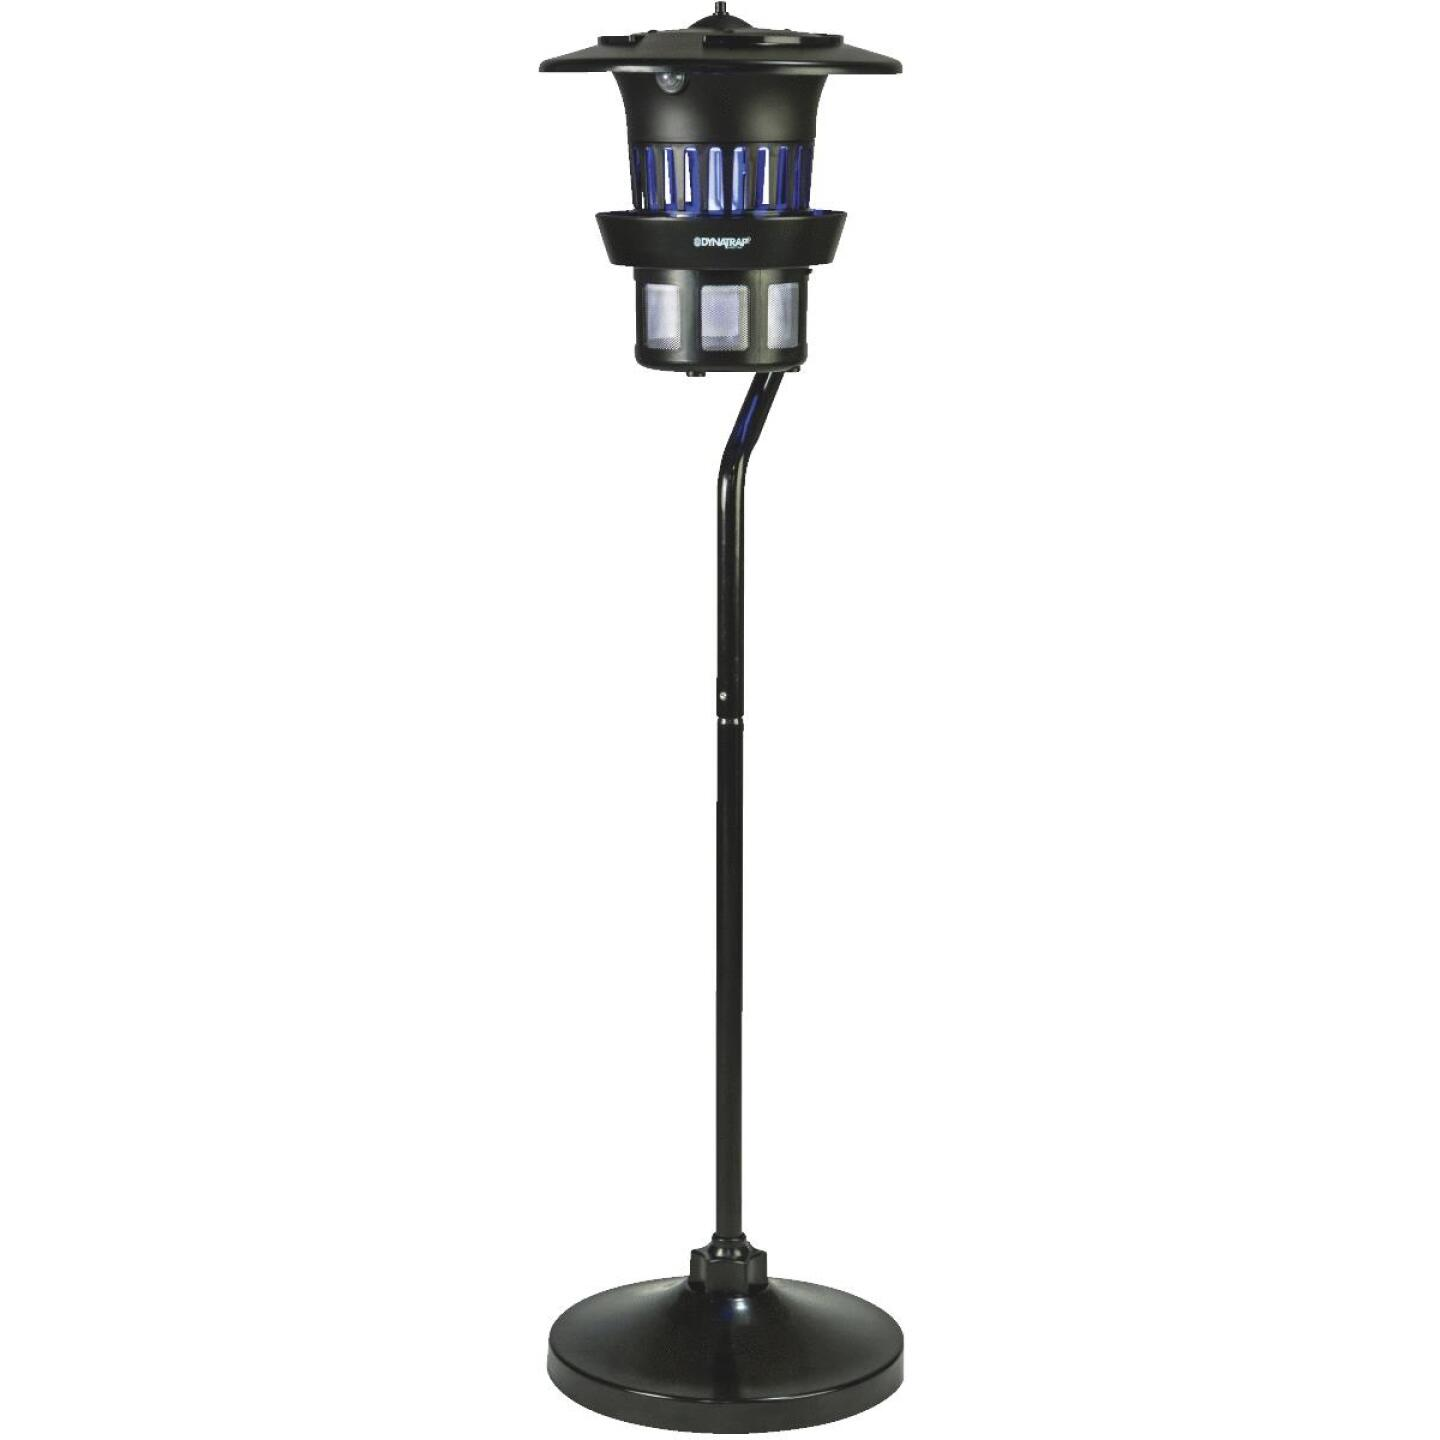 Dynatrap Reusable Outdoor 1/2 Acre Coverage Area Pole Mount Insect Trap Image 1